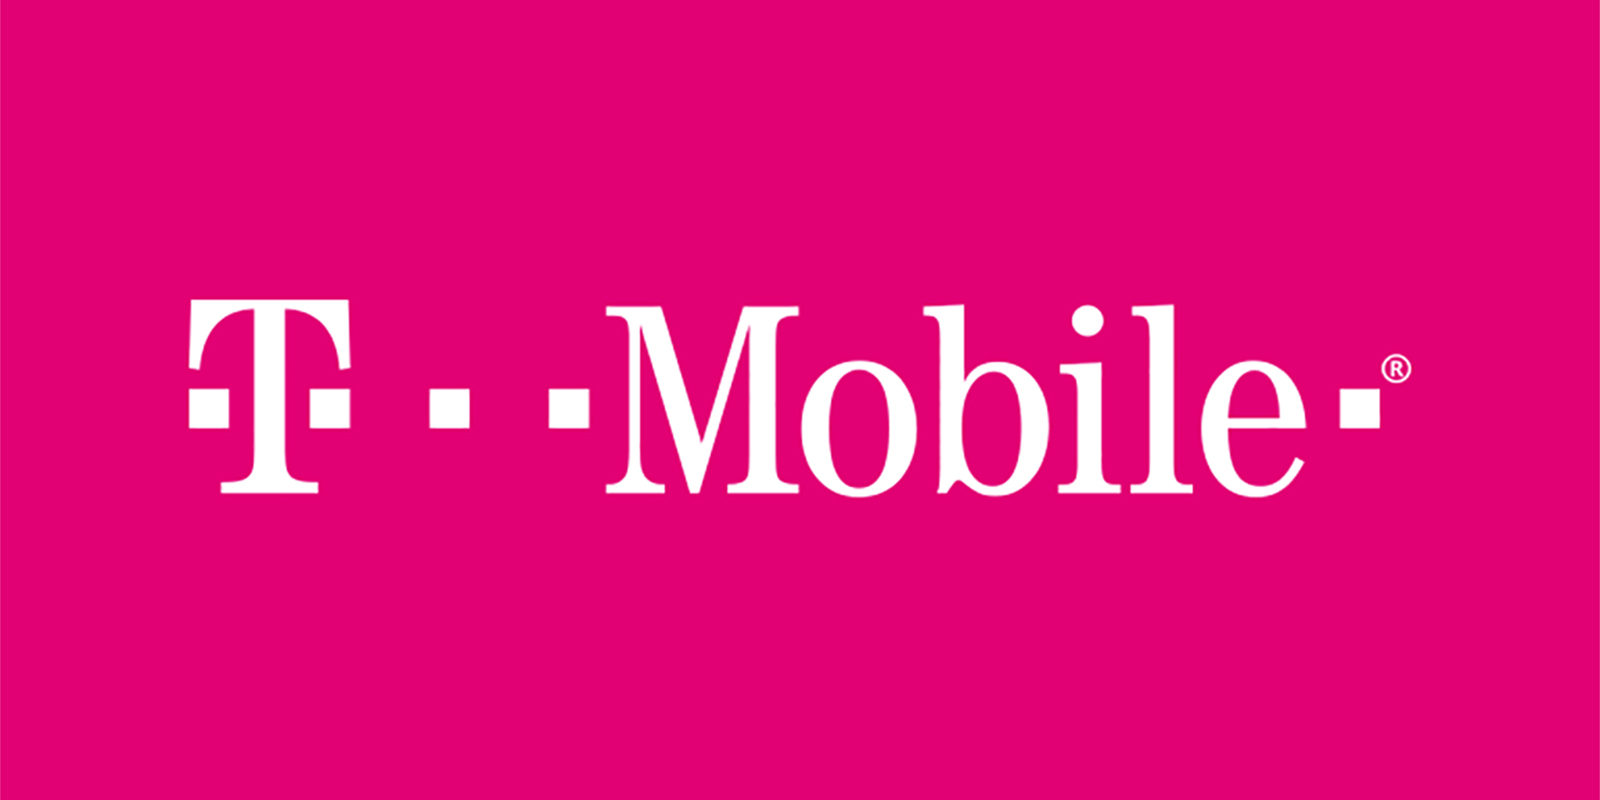 T Mobile Offering 200 When You Switch Carriers And Bring Your Phone Tmonews